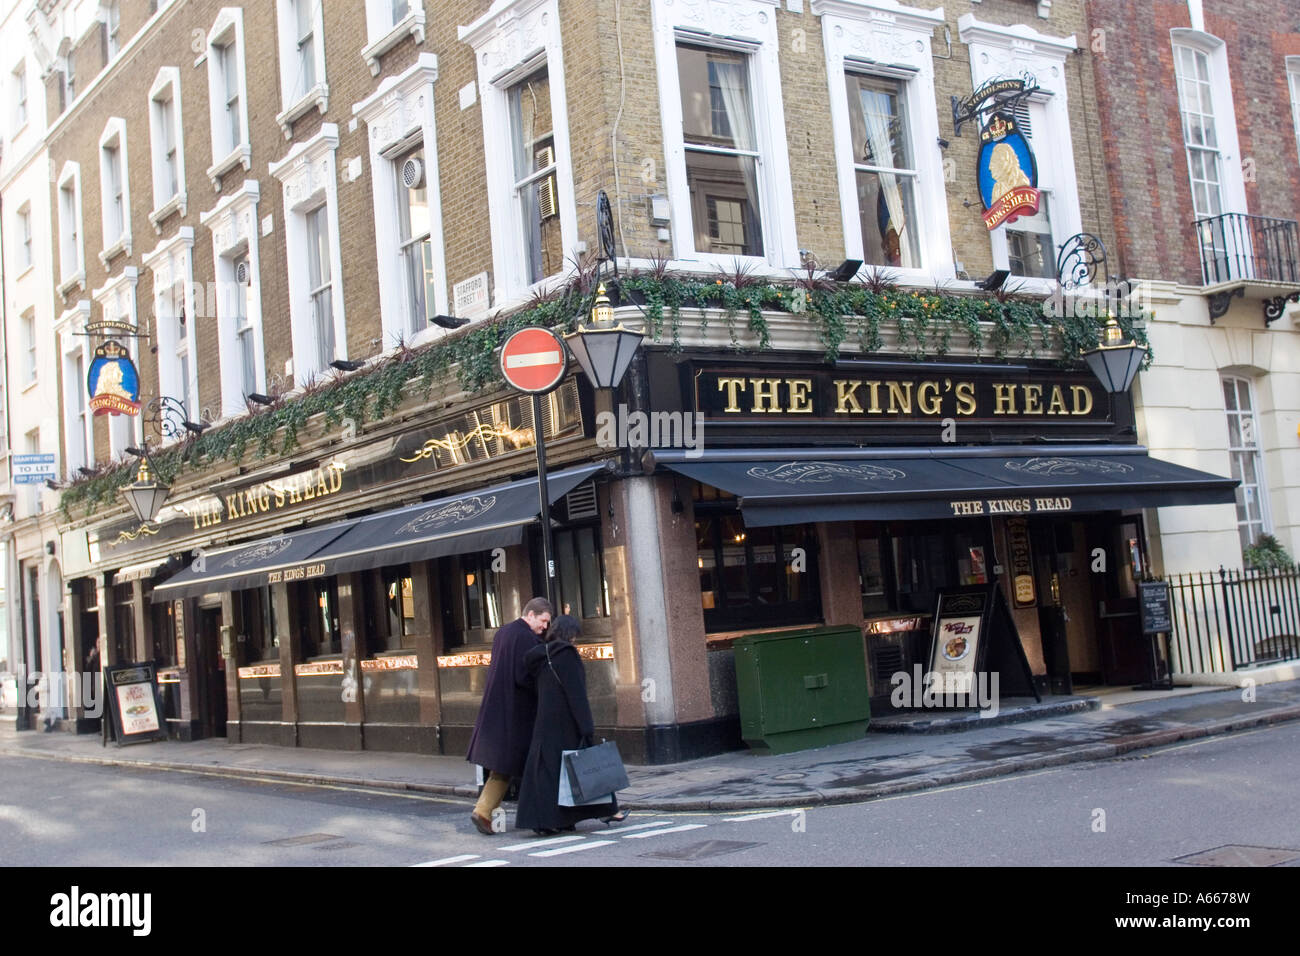 The Kings Head Public house, on the corner of Albemarle Street and Sutton Street London GB UK - Stock Image